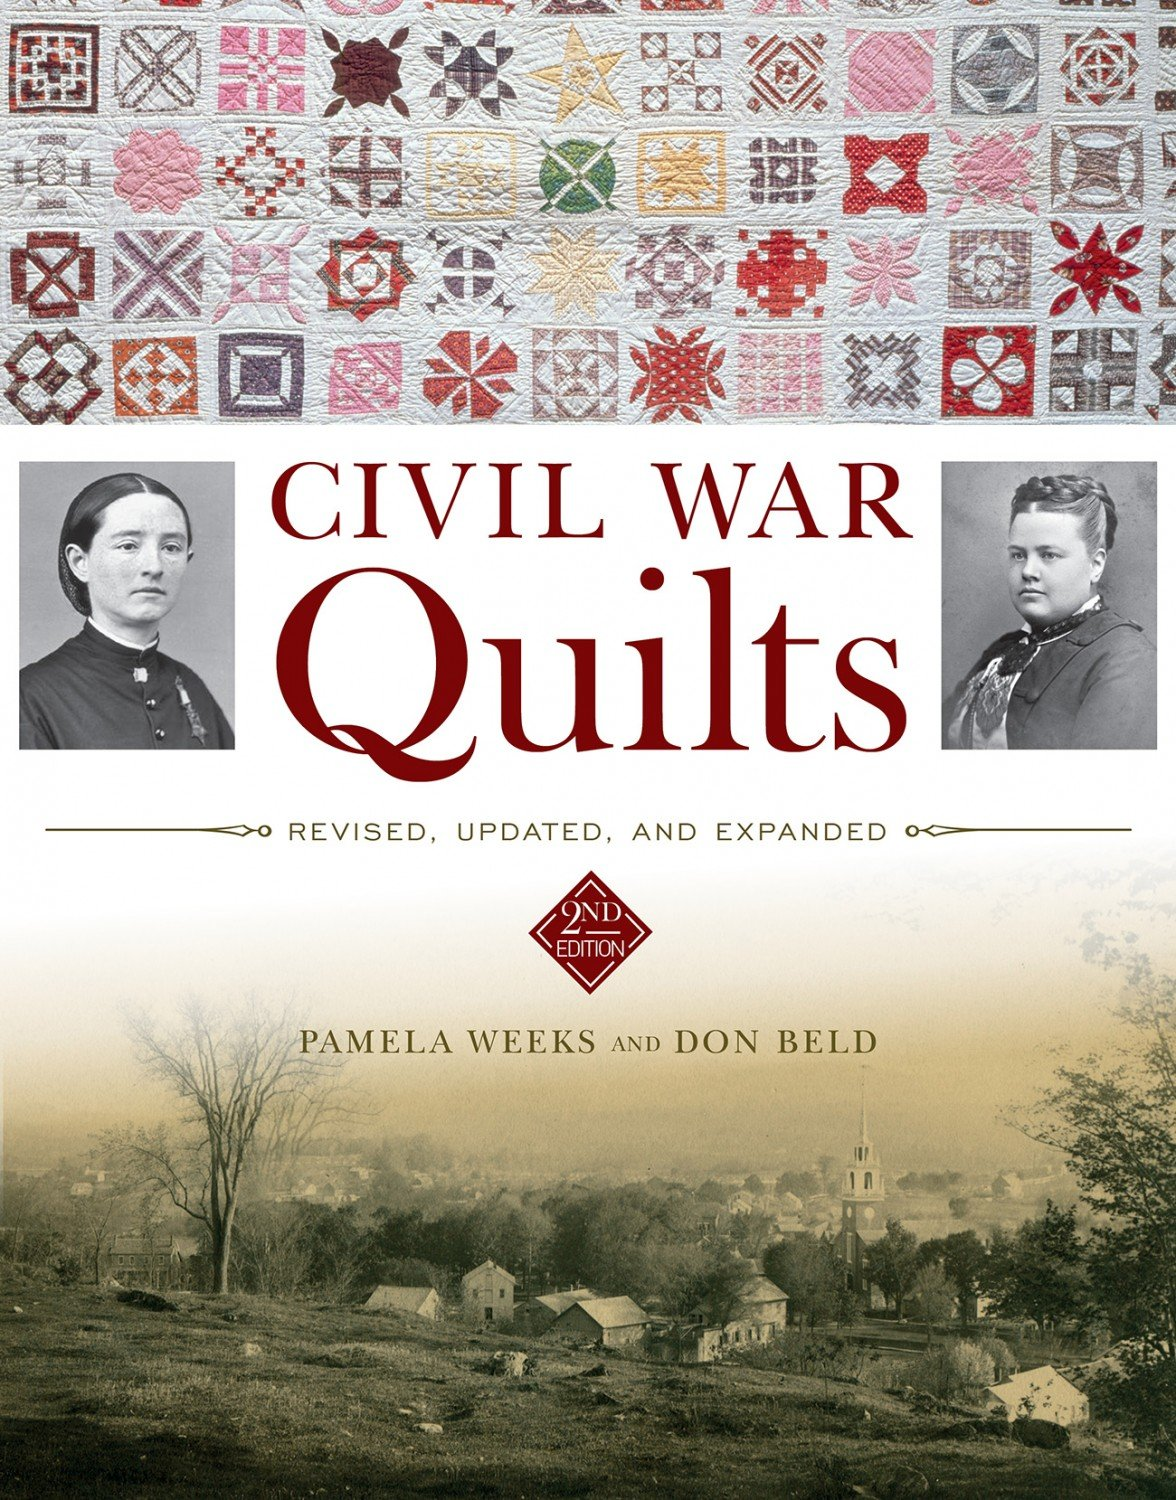 Civil War Quilts: Revised, Updated and Expanded ~RELEASE DATE: Feb 28, 2020~